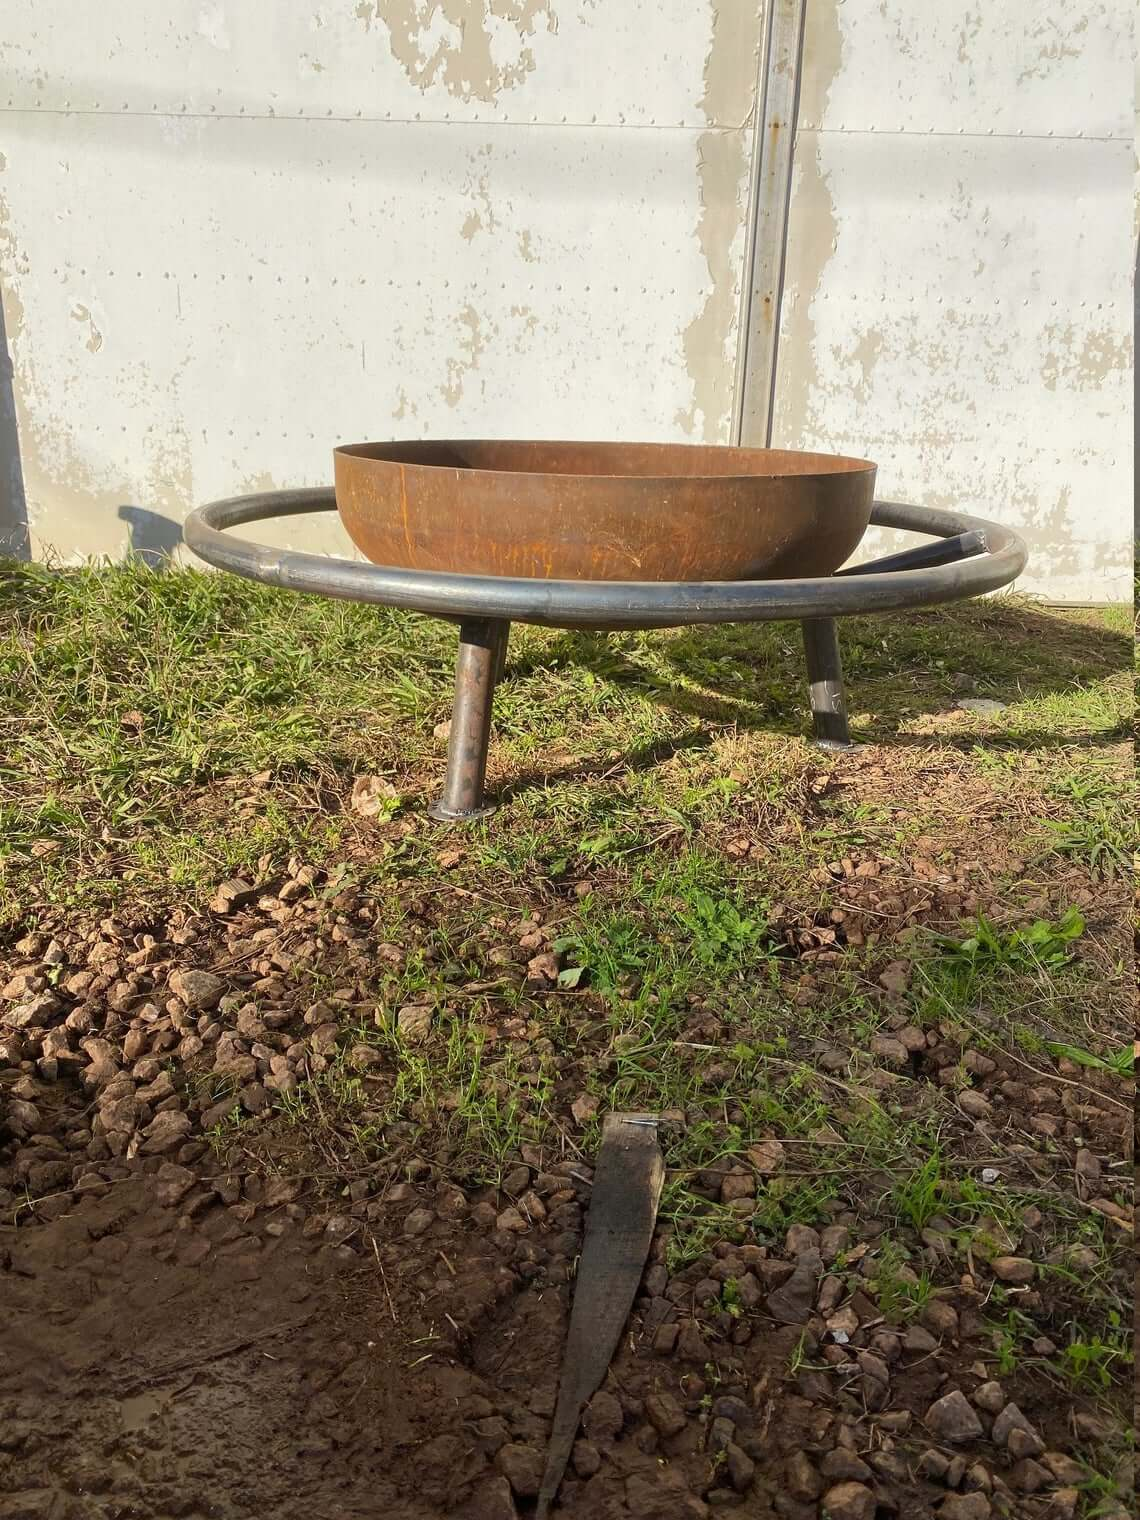 Cool Fire Pit Bowl with Footrest